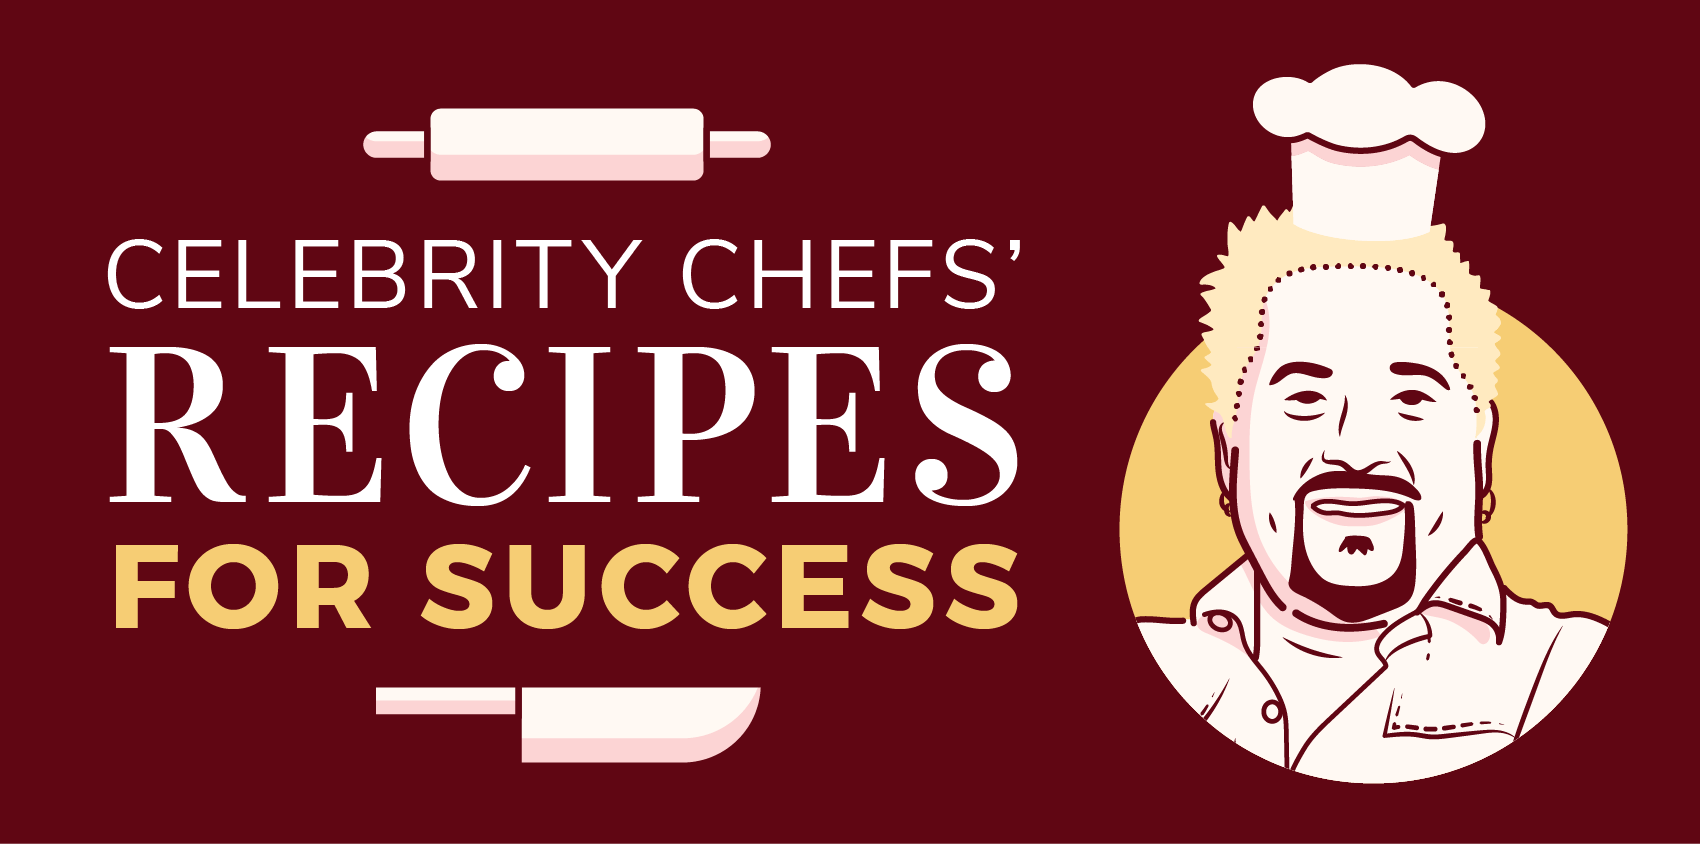 Celebrity Chefs' Recipes For Success